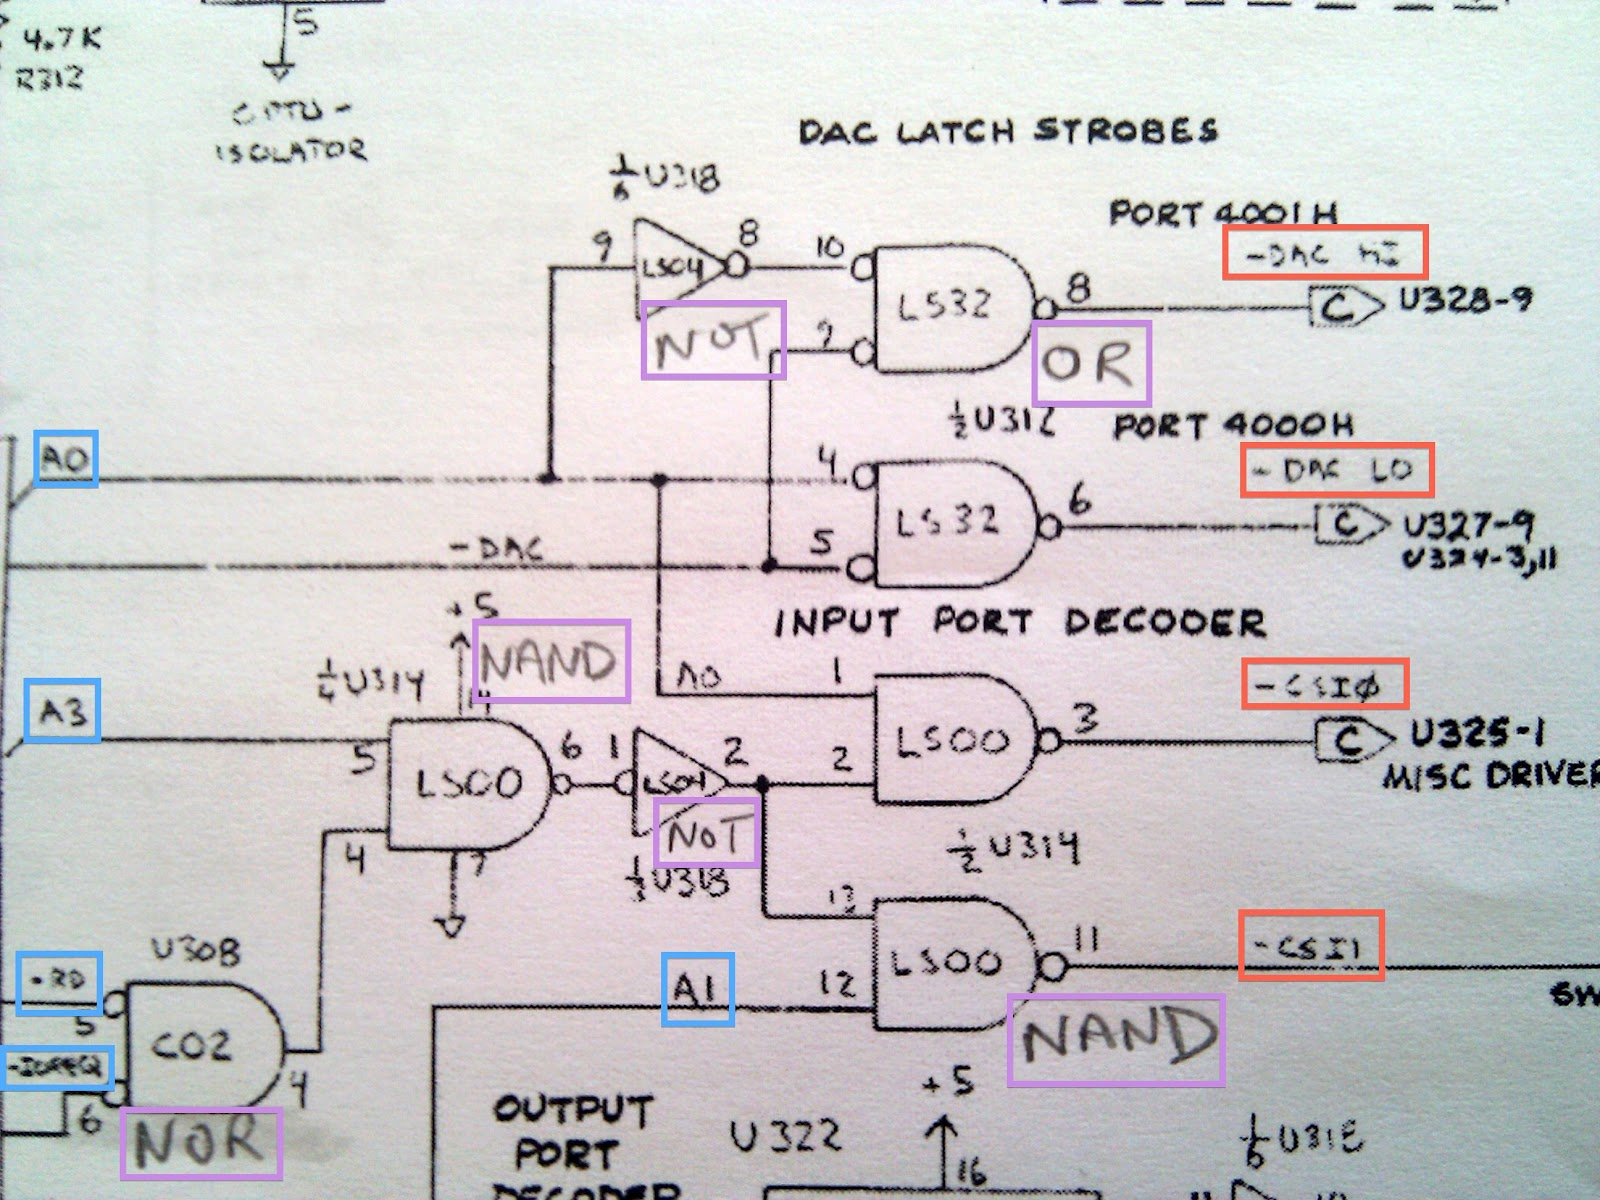 Port Decoding Logic Prophet 600 Spirit 2 4 Decoder Diagram Dave Smith Who Impressively Seems To Have Hand Drawn Almost All The 600s Schematics Has Apparently Used A Bunch Of Unconventional Symbols